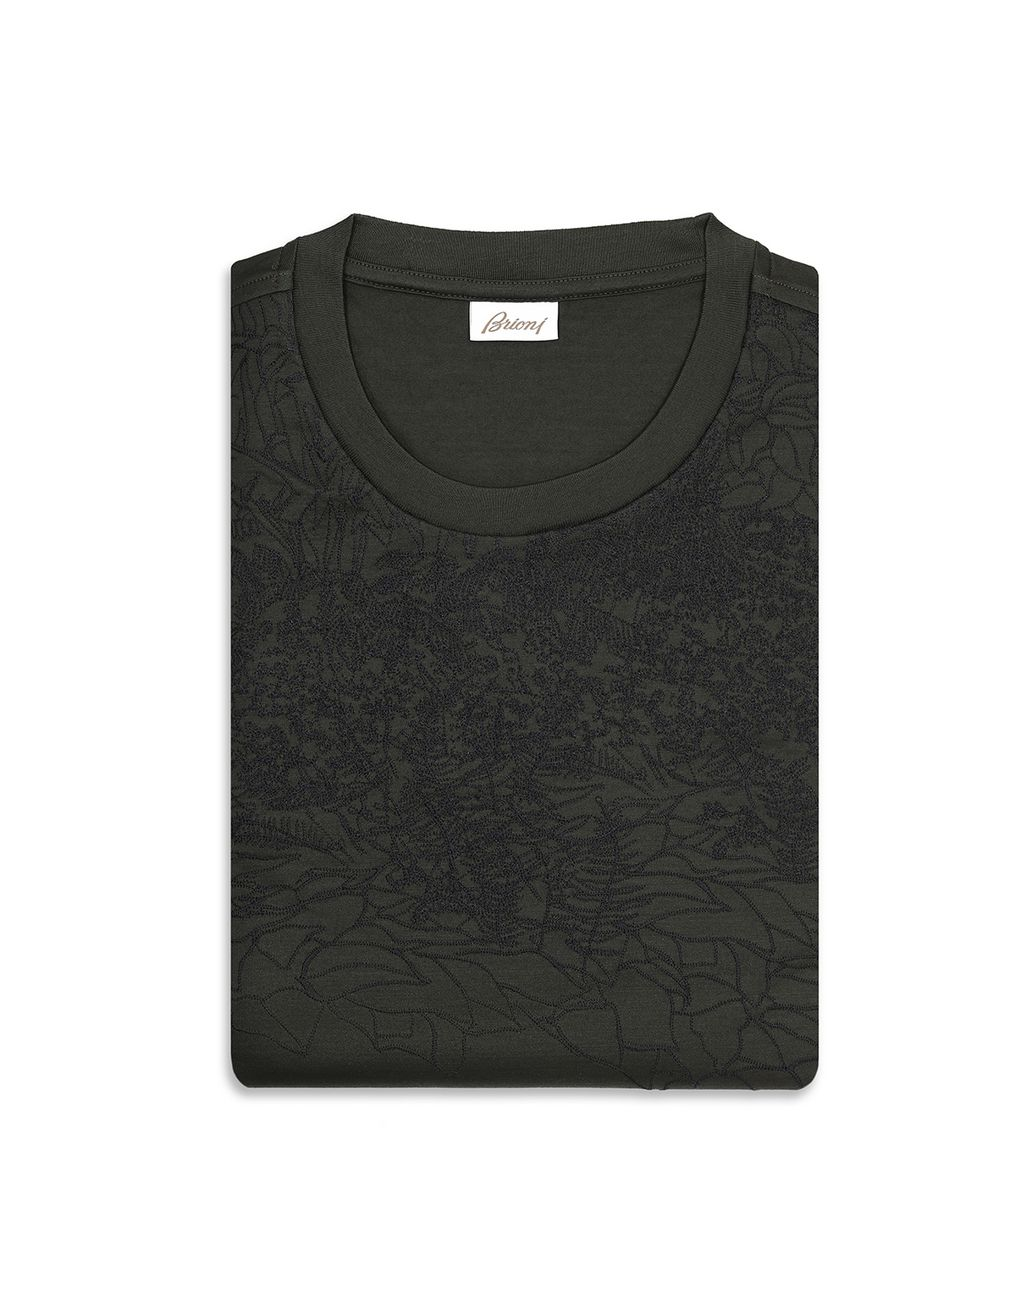 BRIONI Thyme Green Jungle Embroidery T-Shirt T-Shirts & Polos Man e